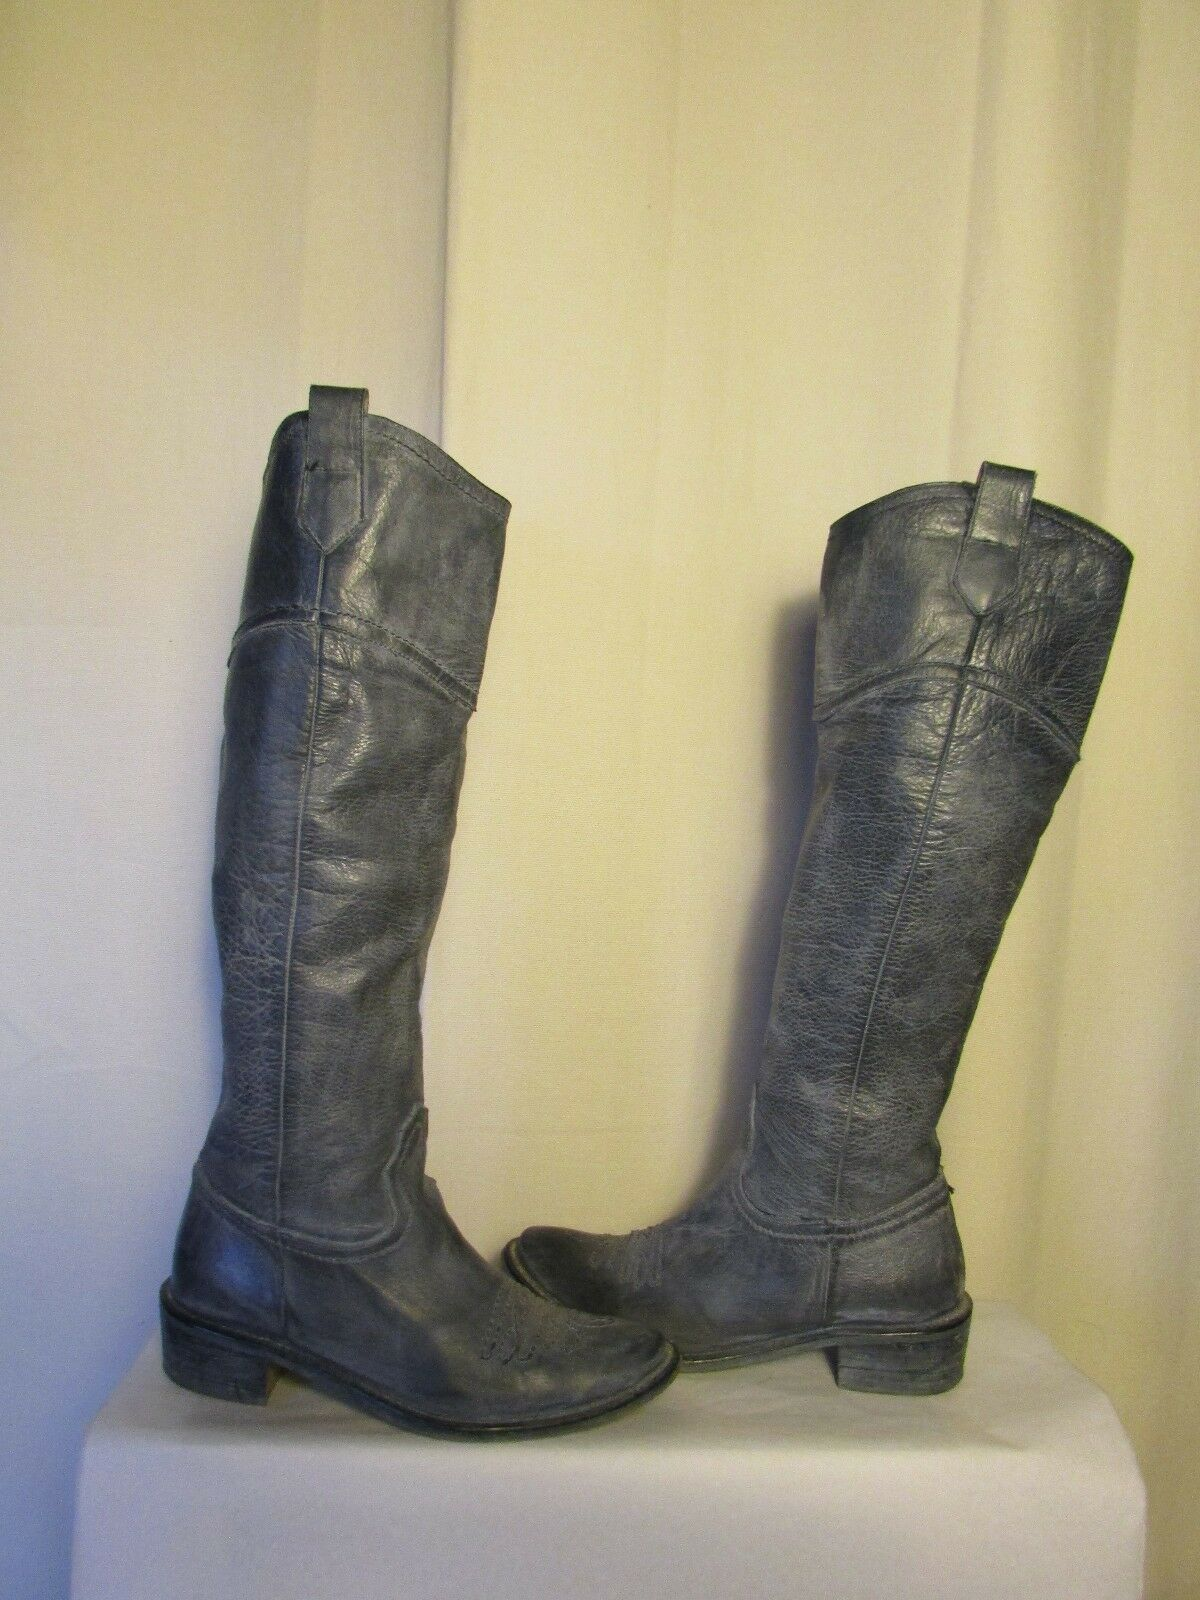 MANFIELD Boots Knees Smooth Leather Smooth Knees Lined leather T 36.5 VERY GOOD CONDITION 3af23c